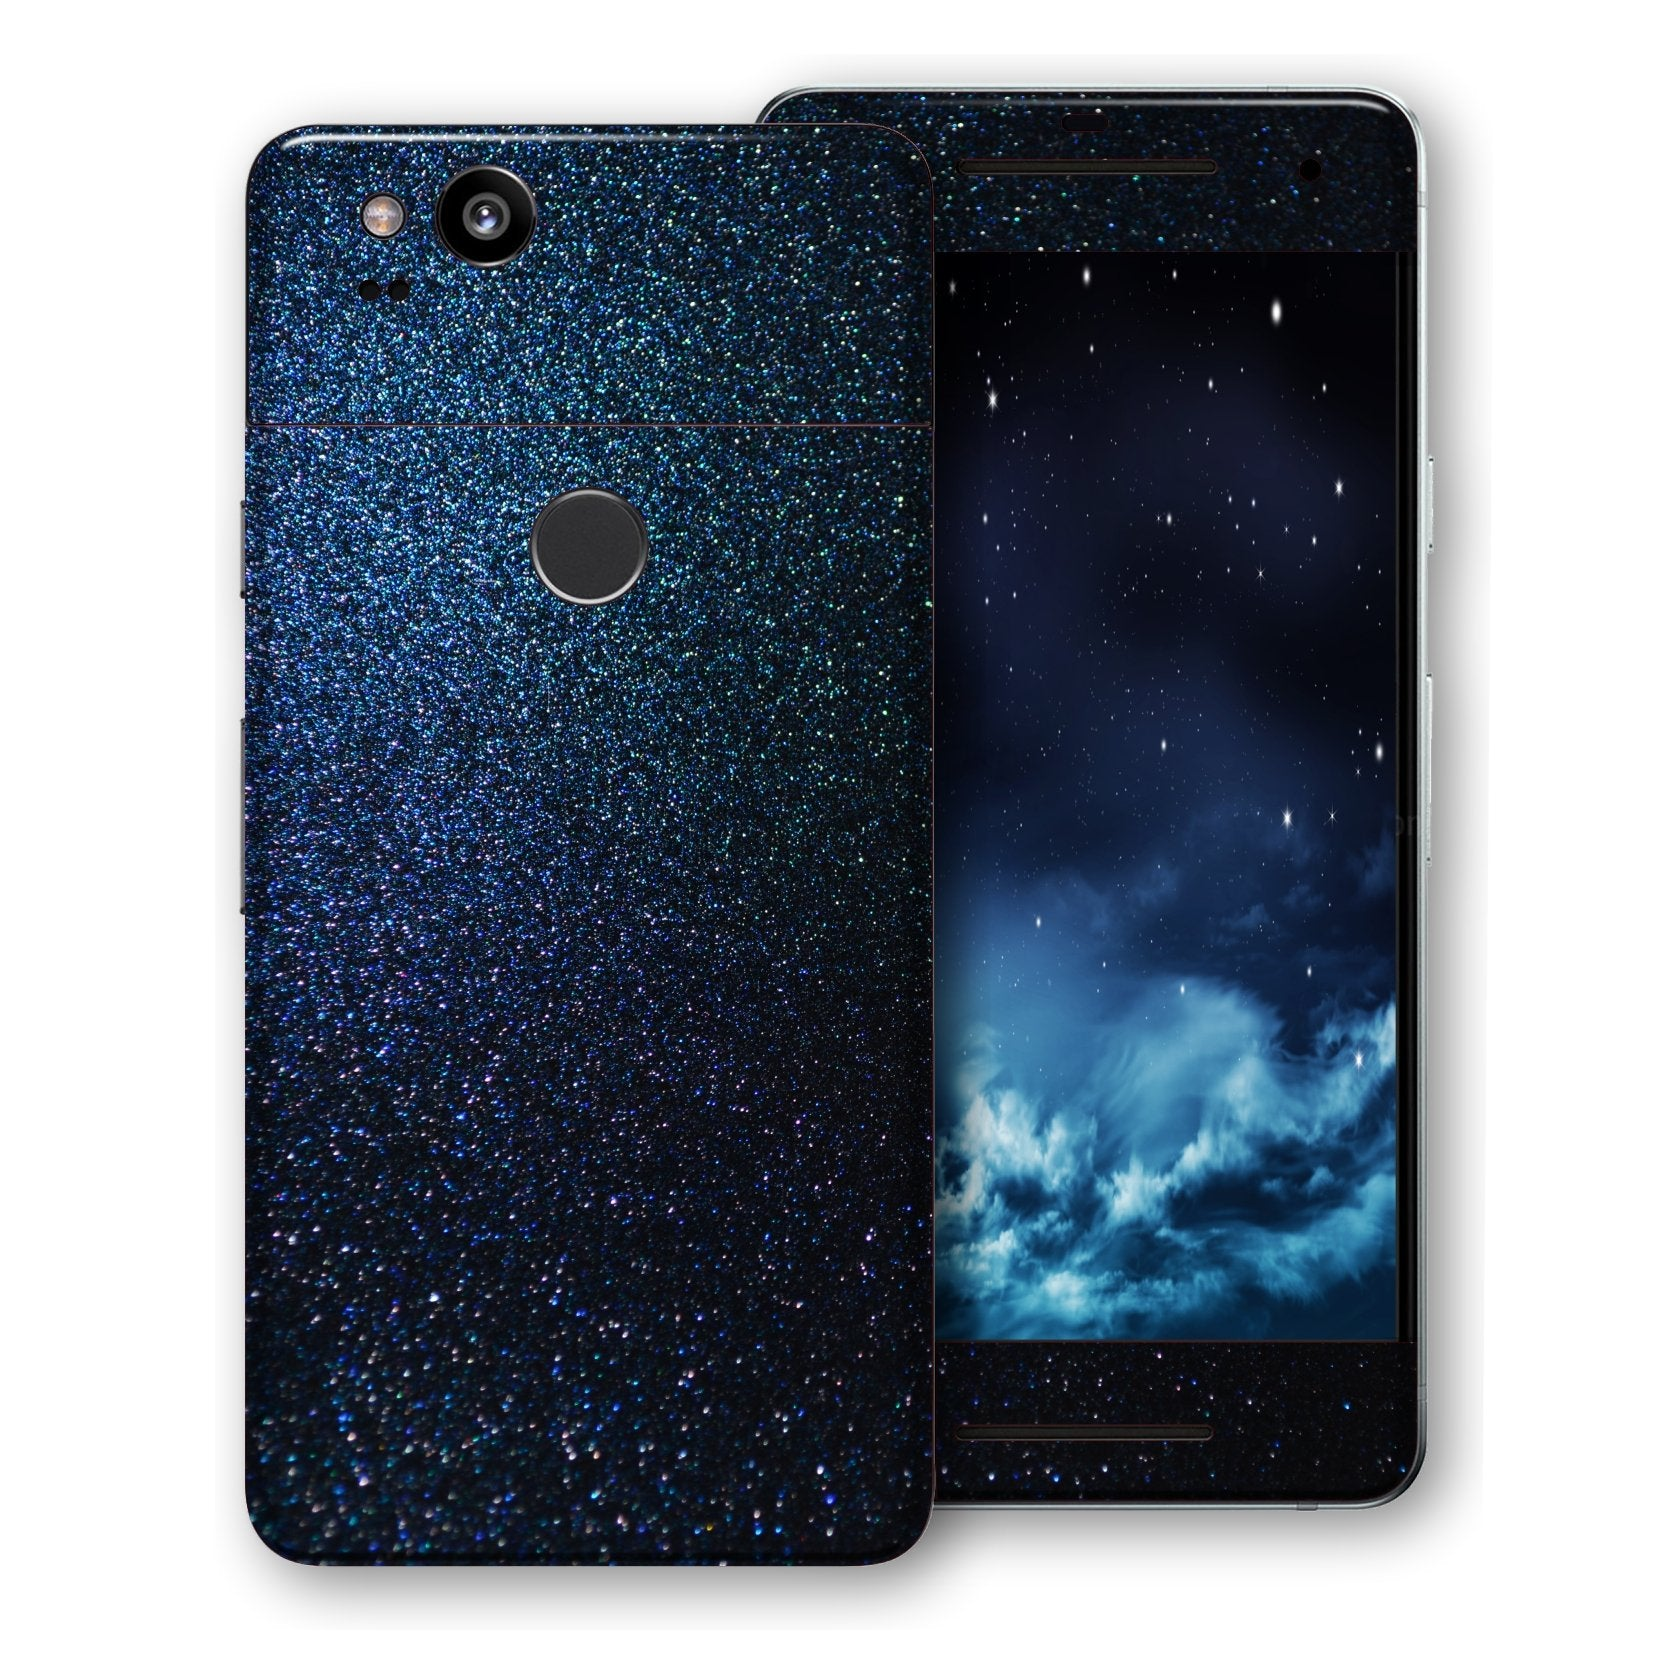 Google Pixel 2 Glossy Midnight Blue Metallic Skin, Decal, Wrap, Protector, Cover by EasySkinz | EasySkinz.com